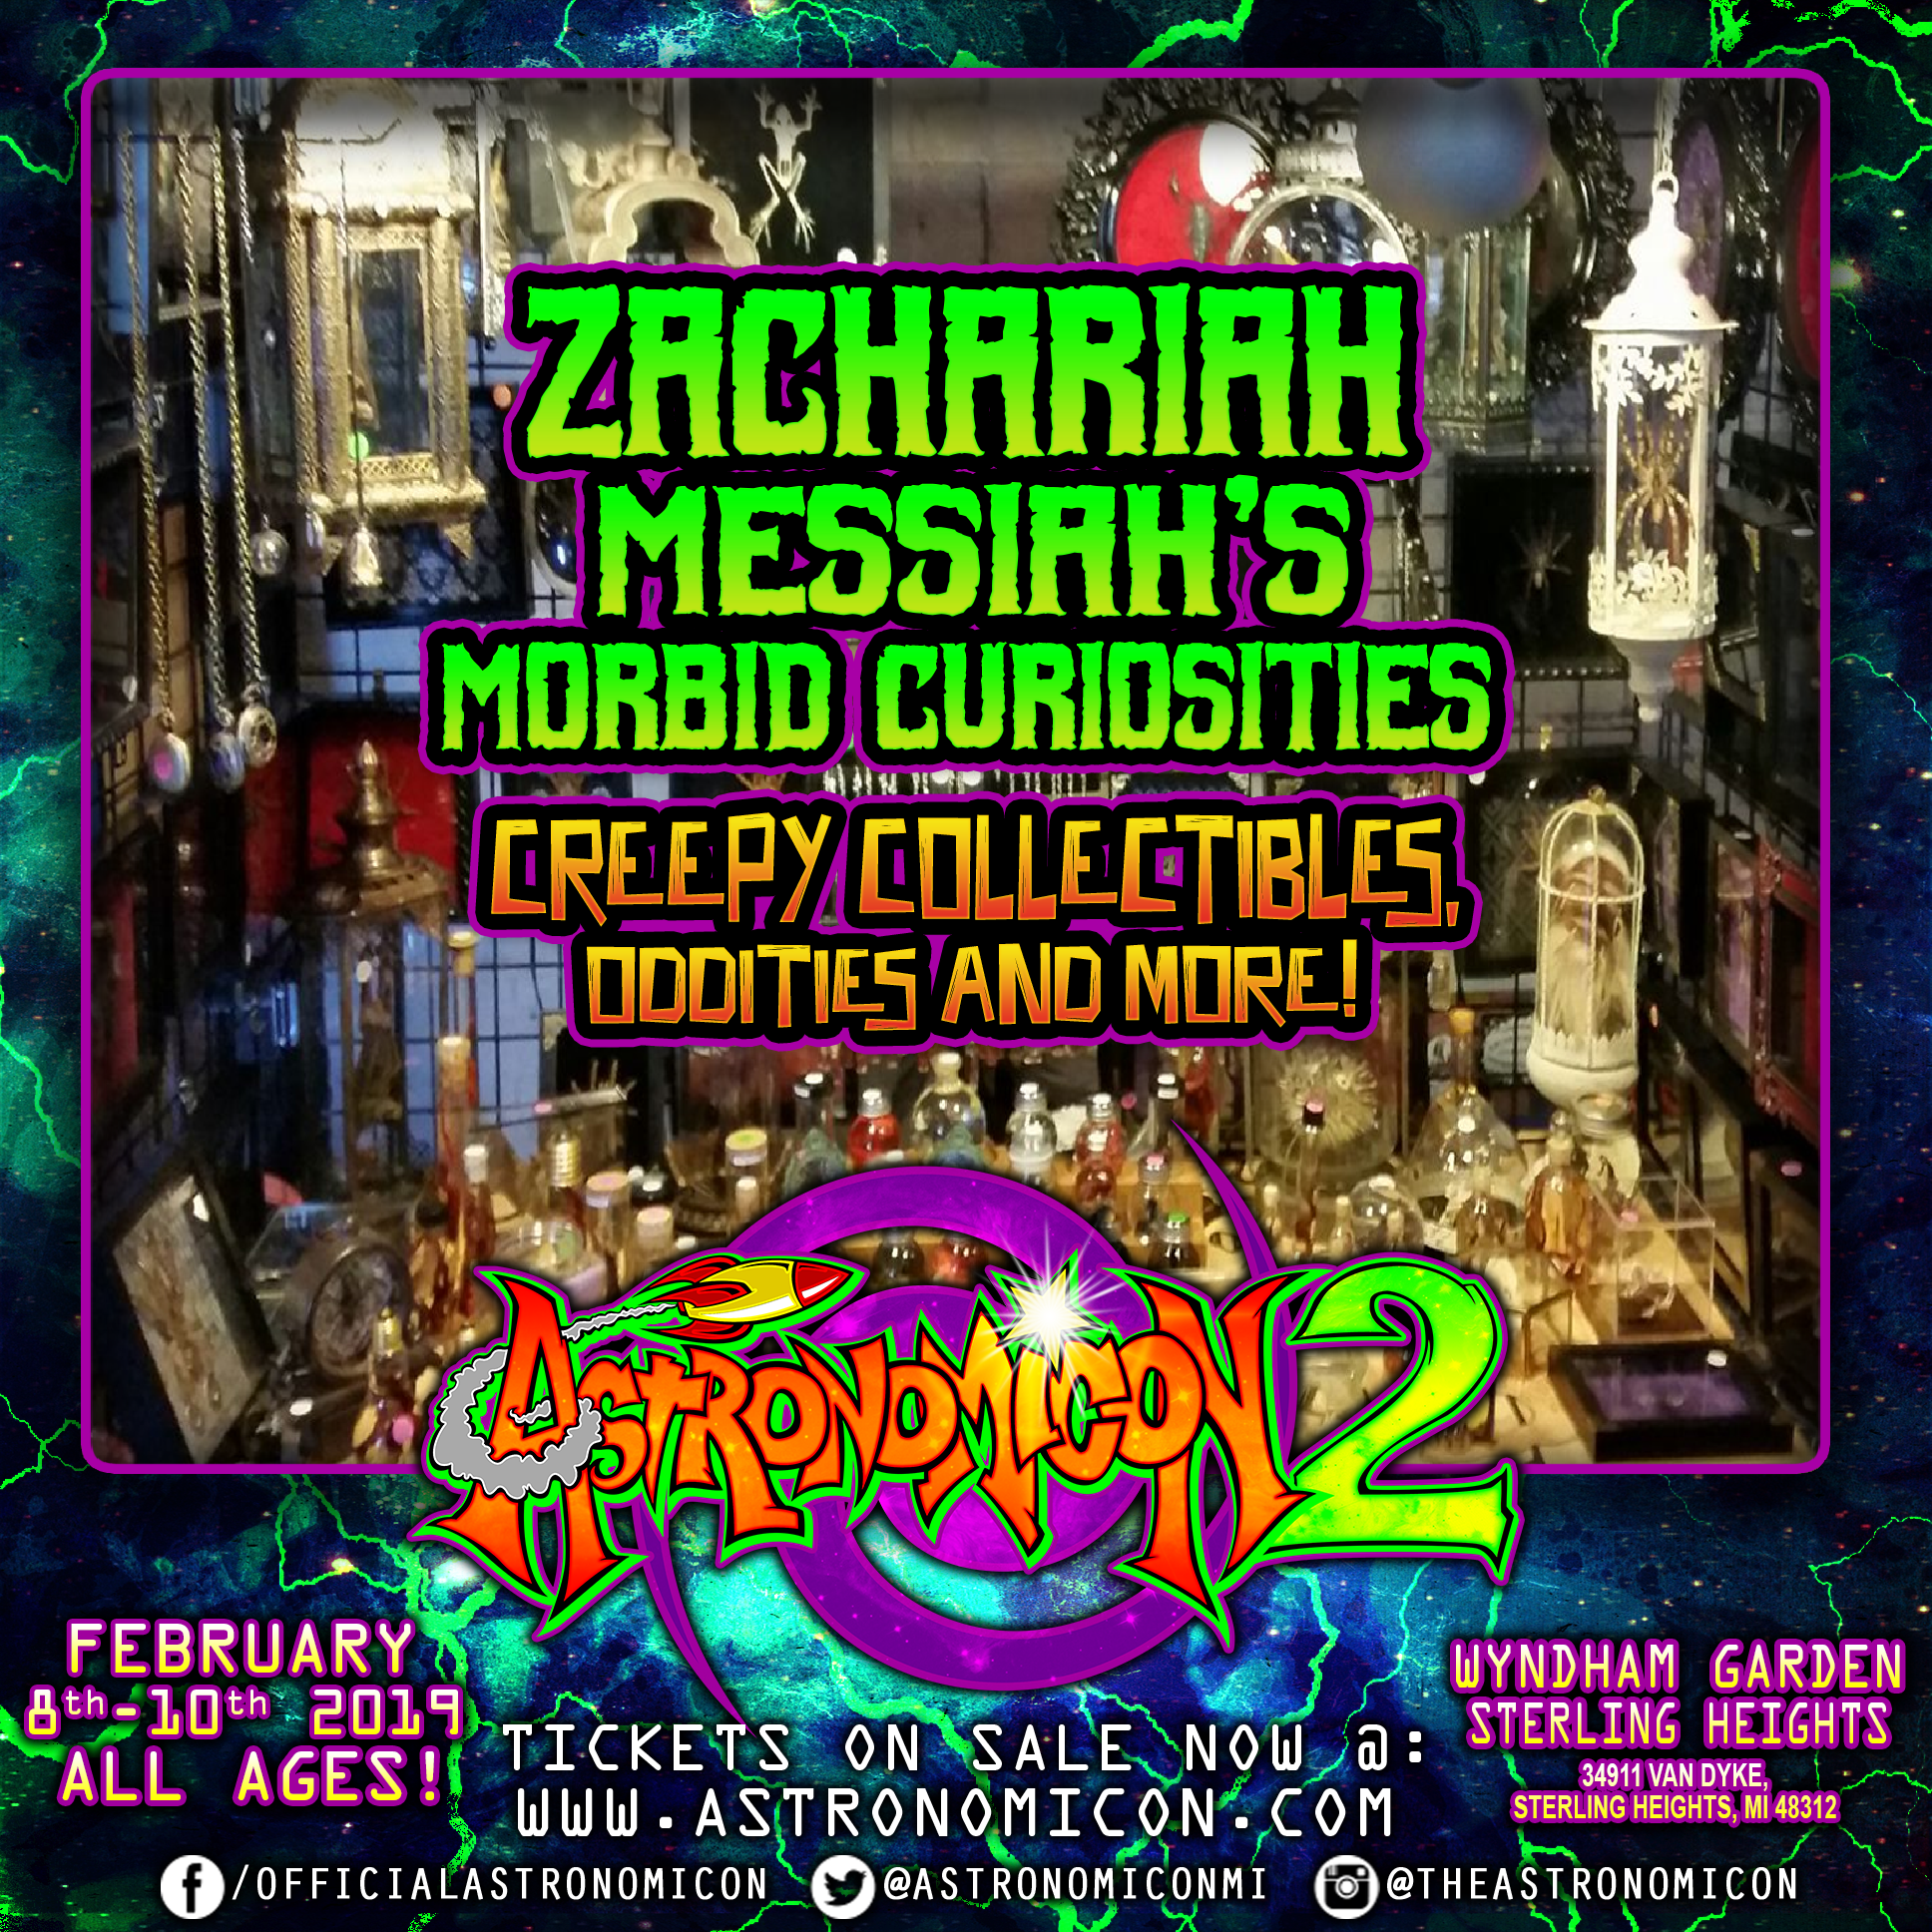 Astronomicon 2 Morbid Curiousities IG Ad.png